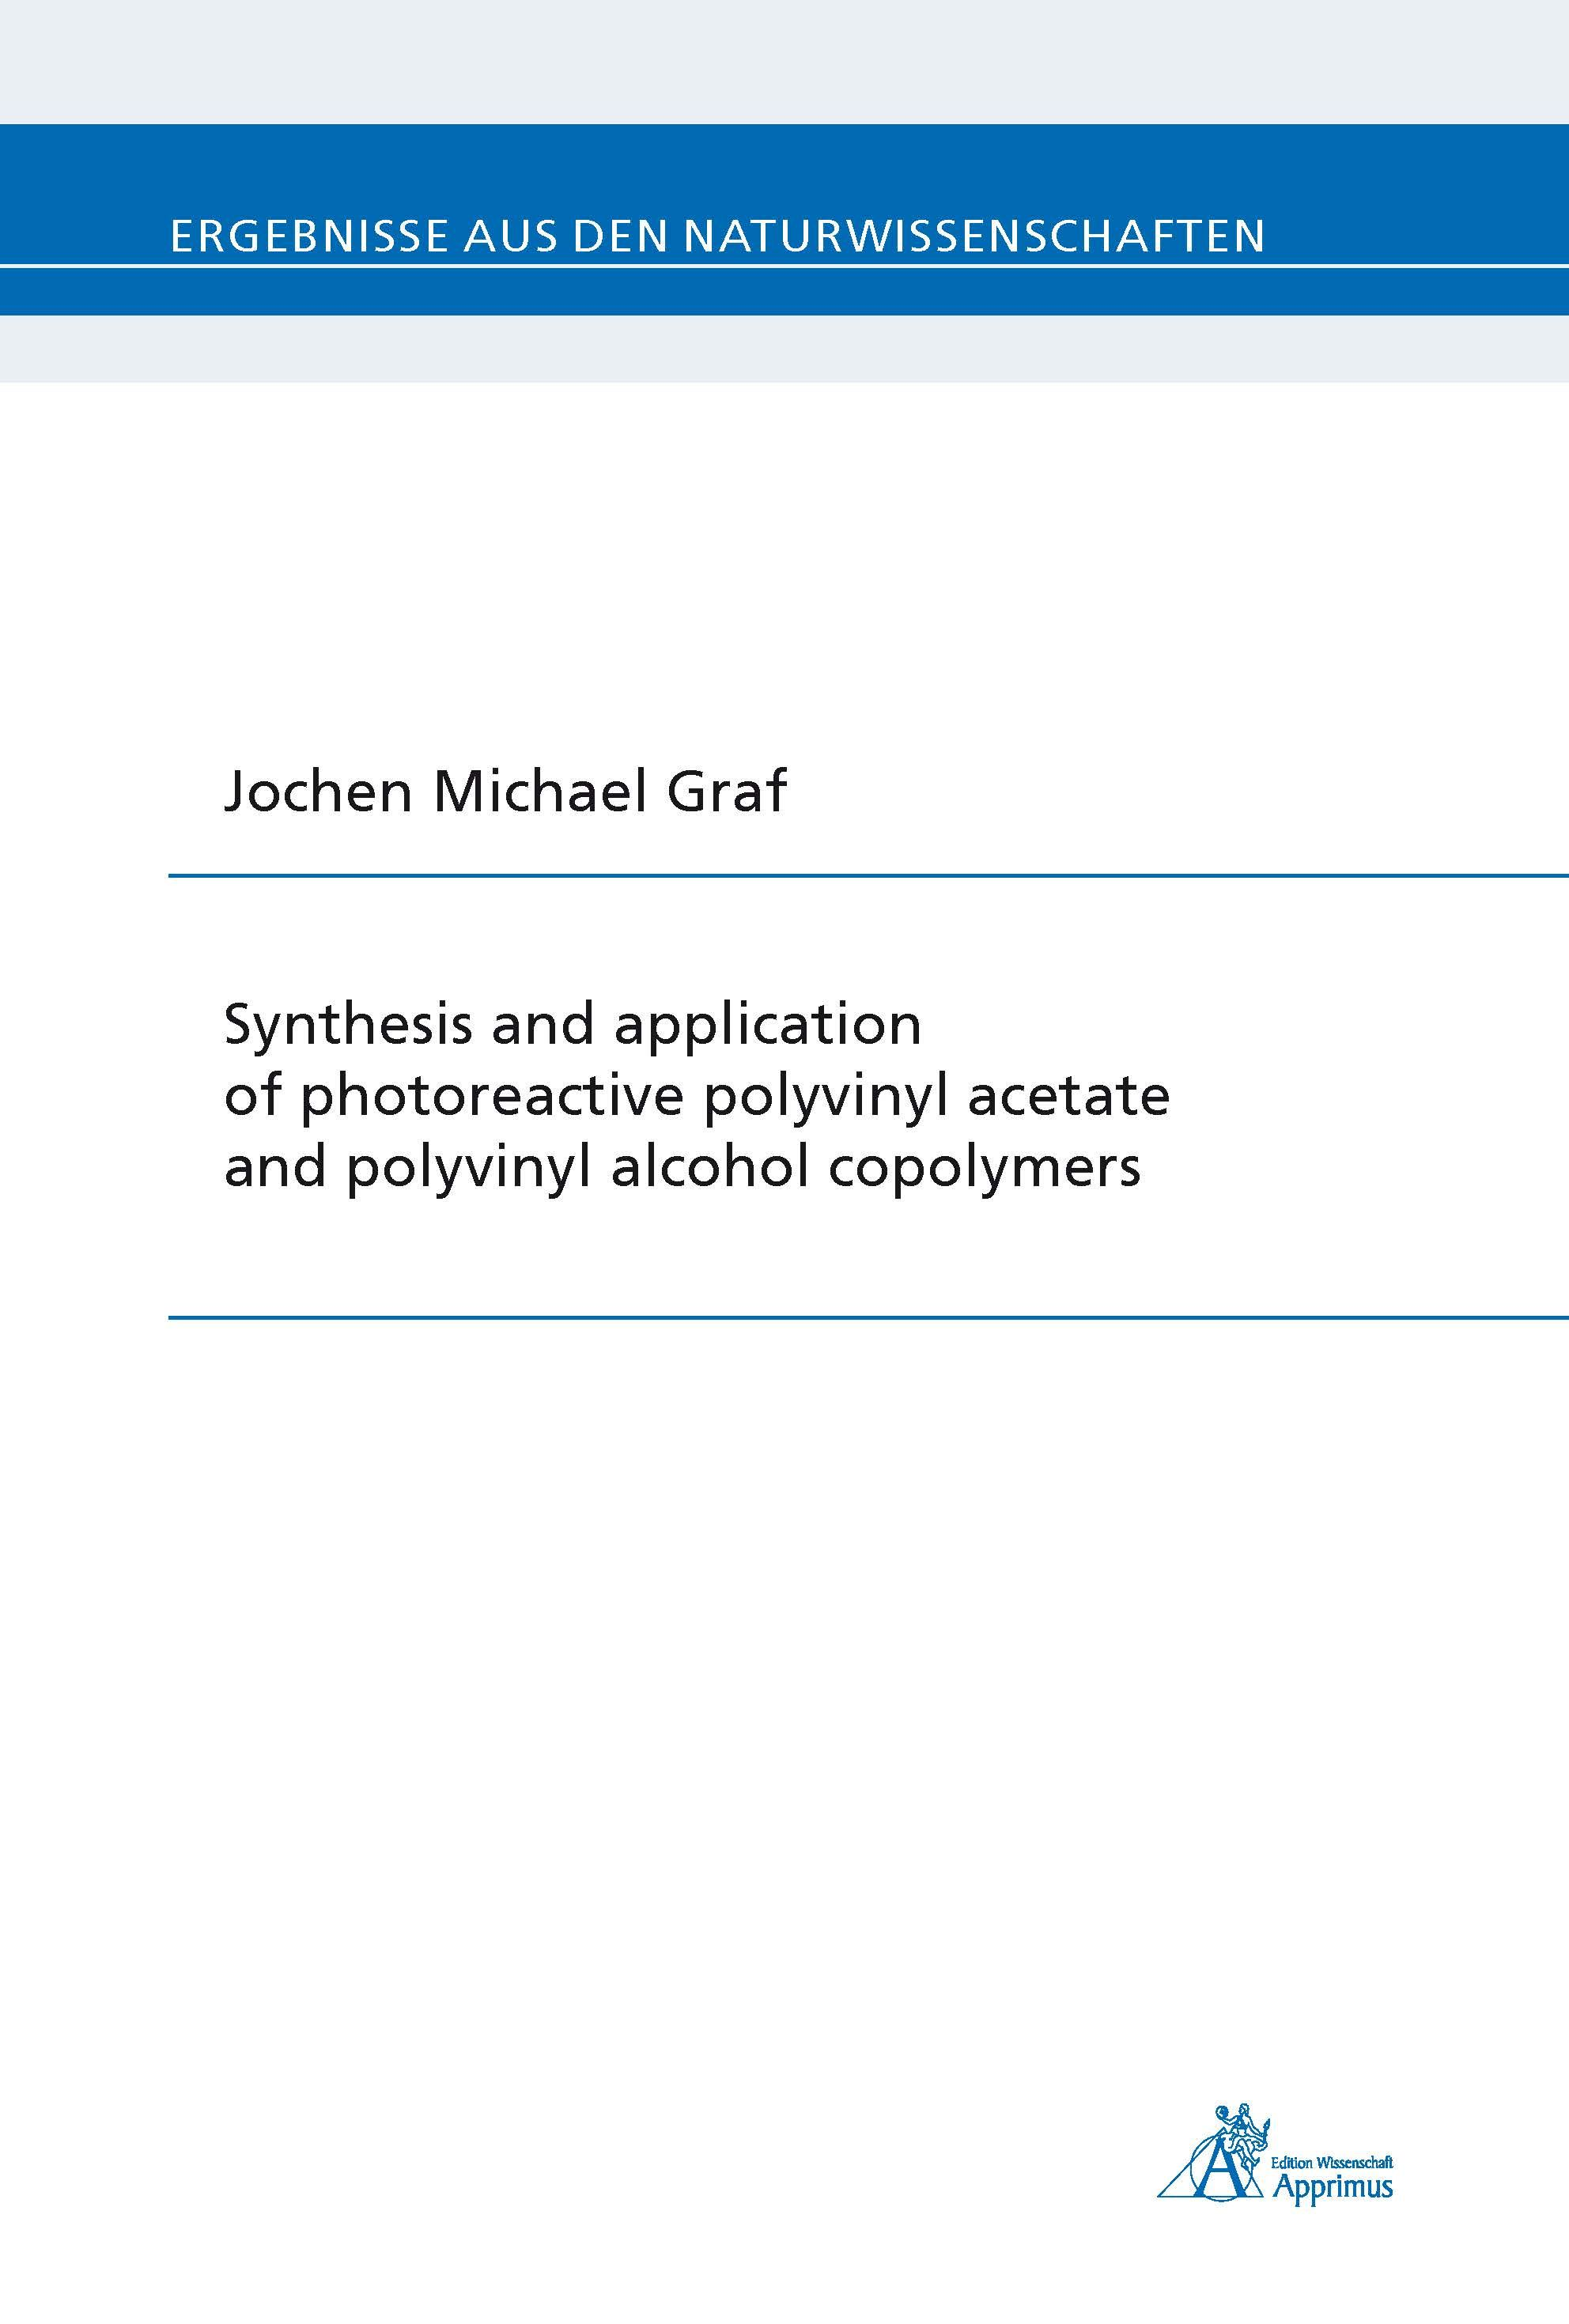 Synthesis and application of photoreactive polyvinyl acetate and polyvinyl alcohol copolymers